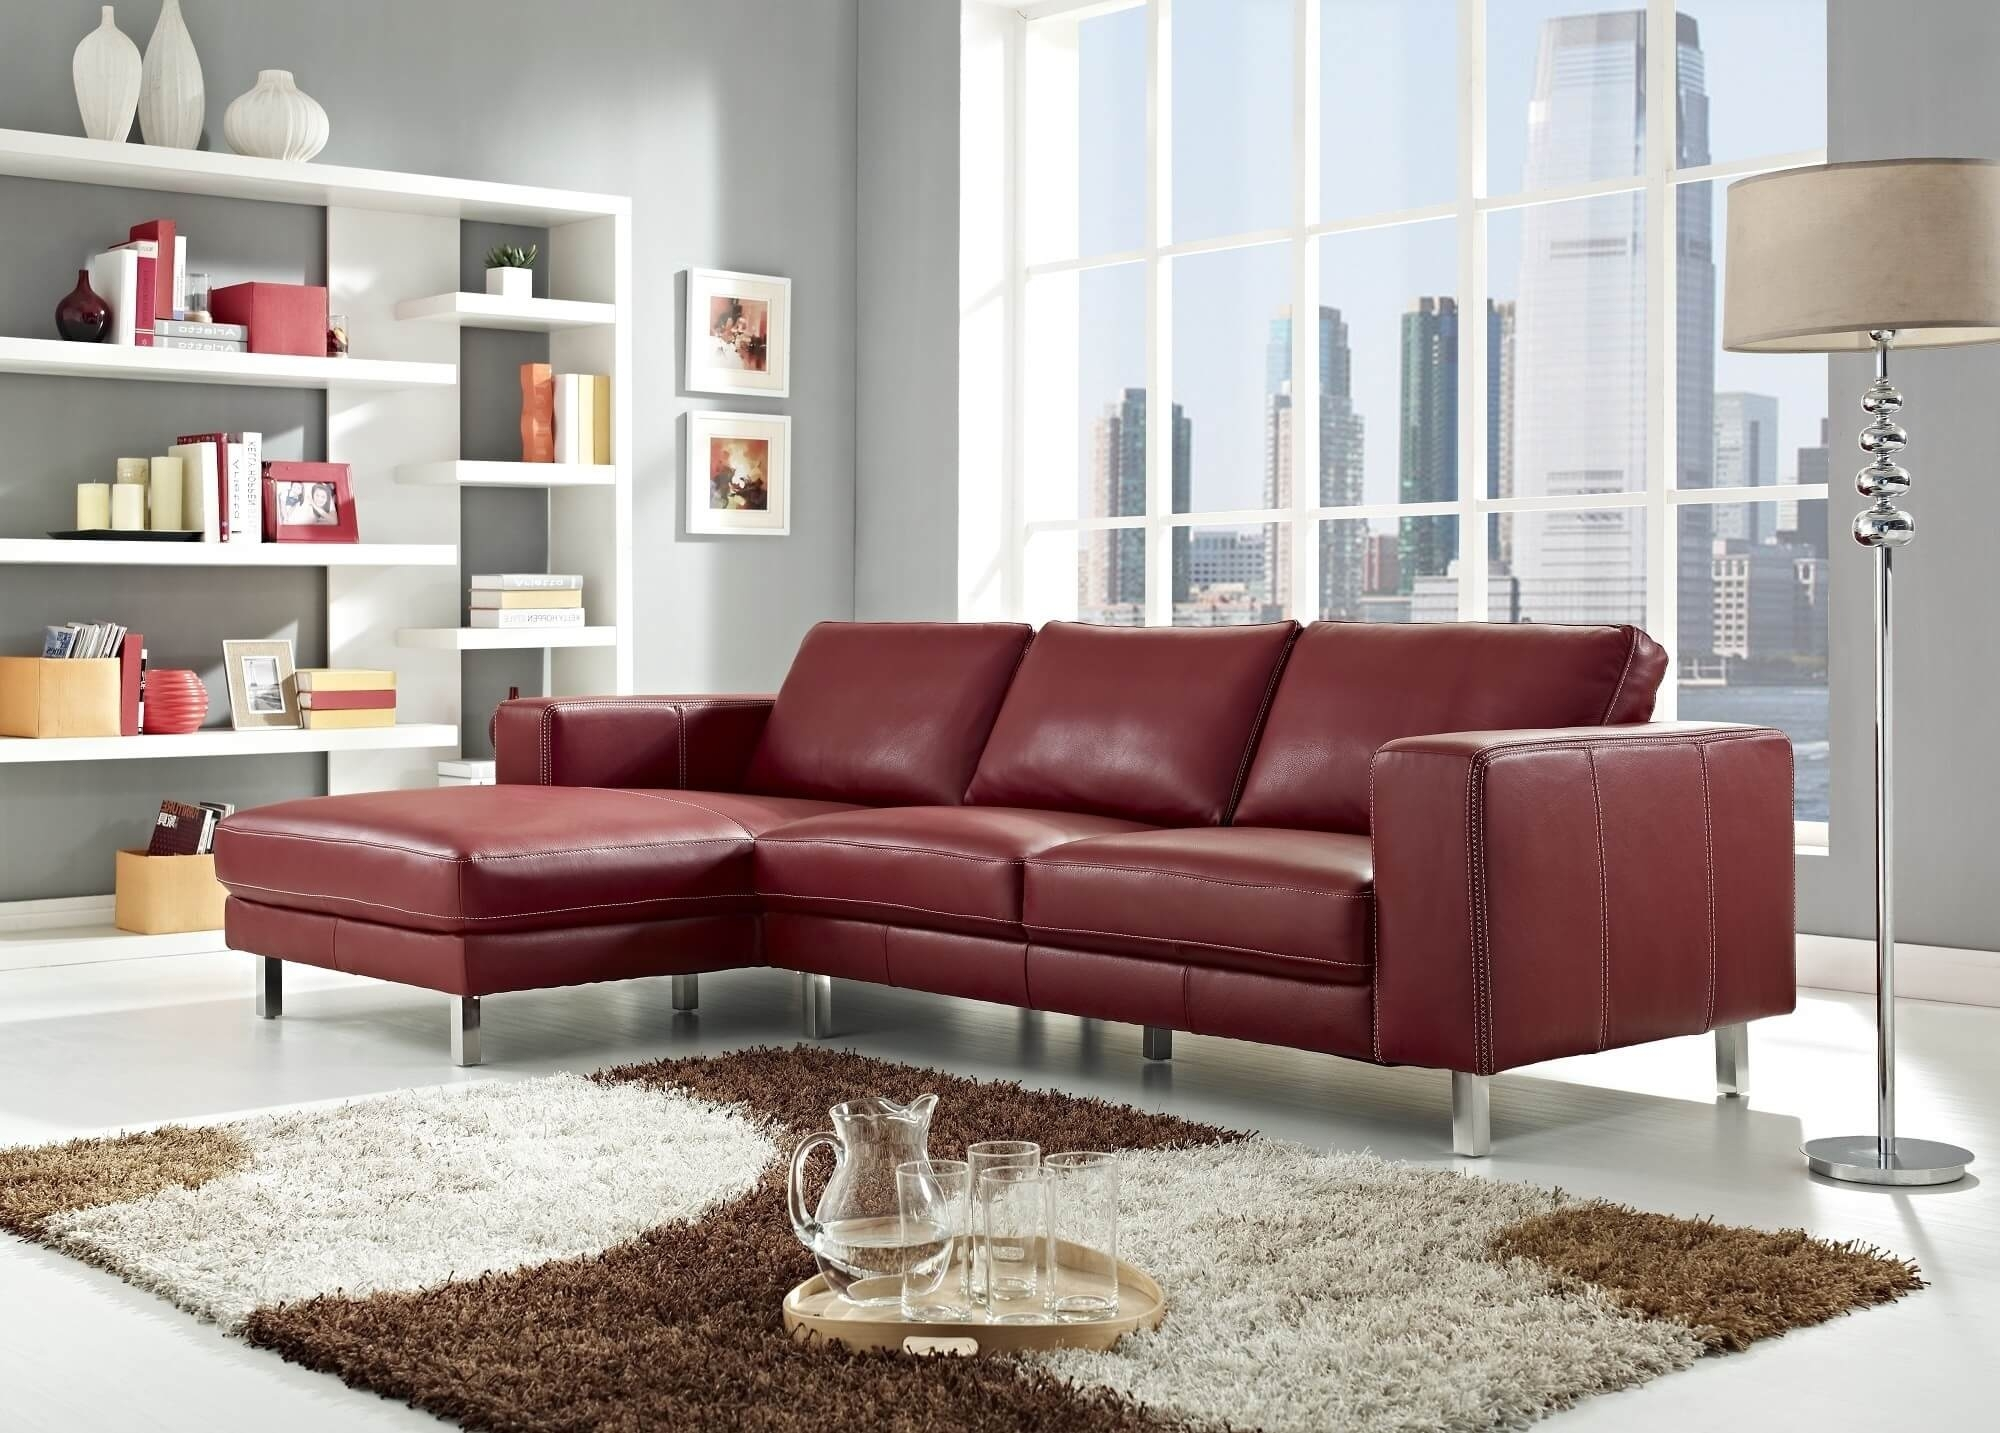 Stylish Modern Red Sectional Sofas regarding Red Leather Couches For Living Room (Image 14 of 15)